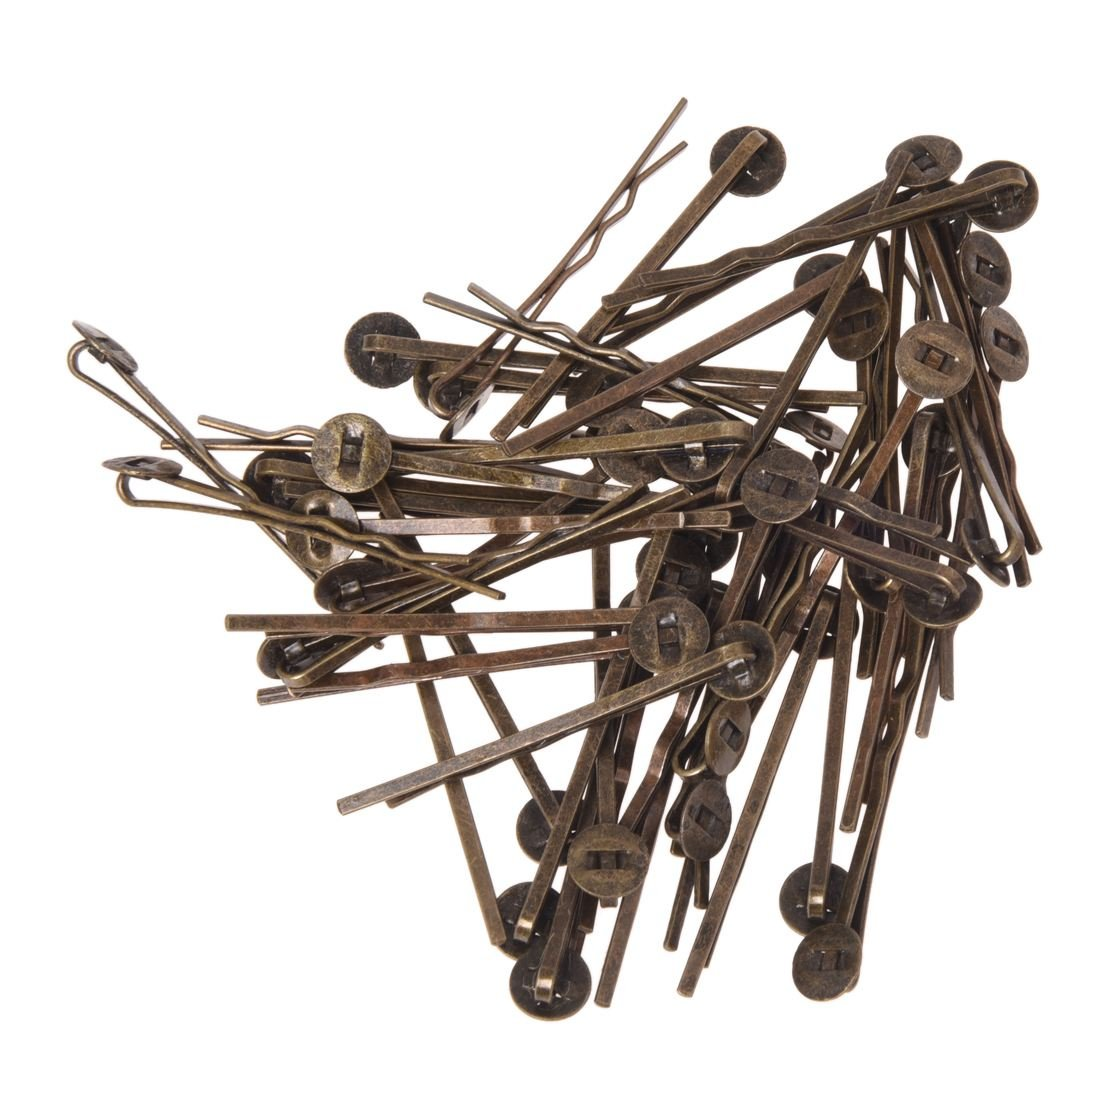 SODIAL(R) 50 Antique Bronze Metal Bobby Hair Pin Clip w/ Pad 0.3 HOT 029197